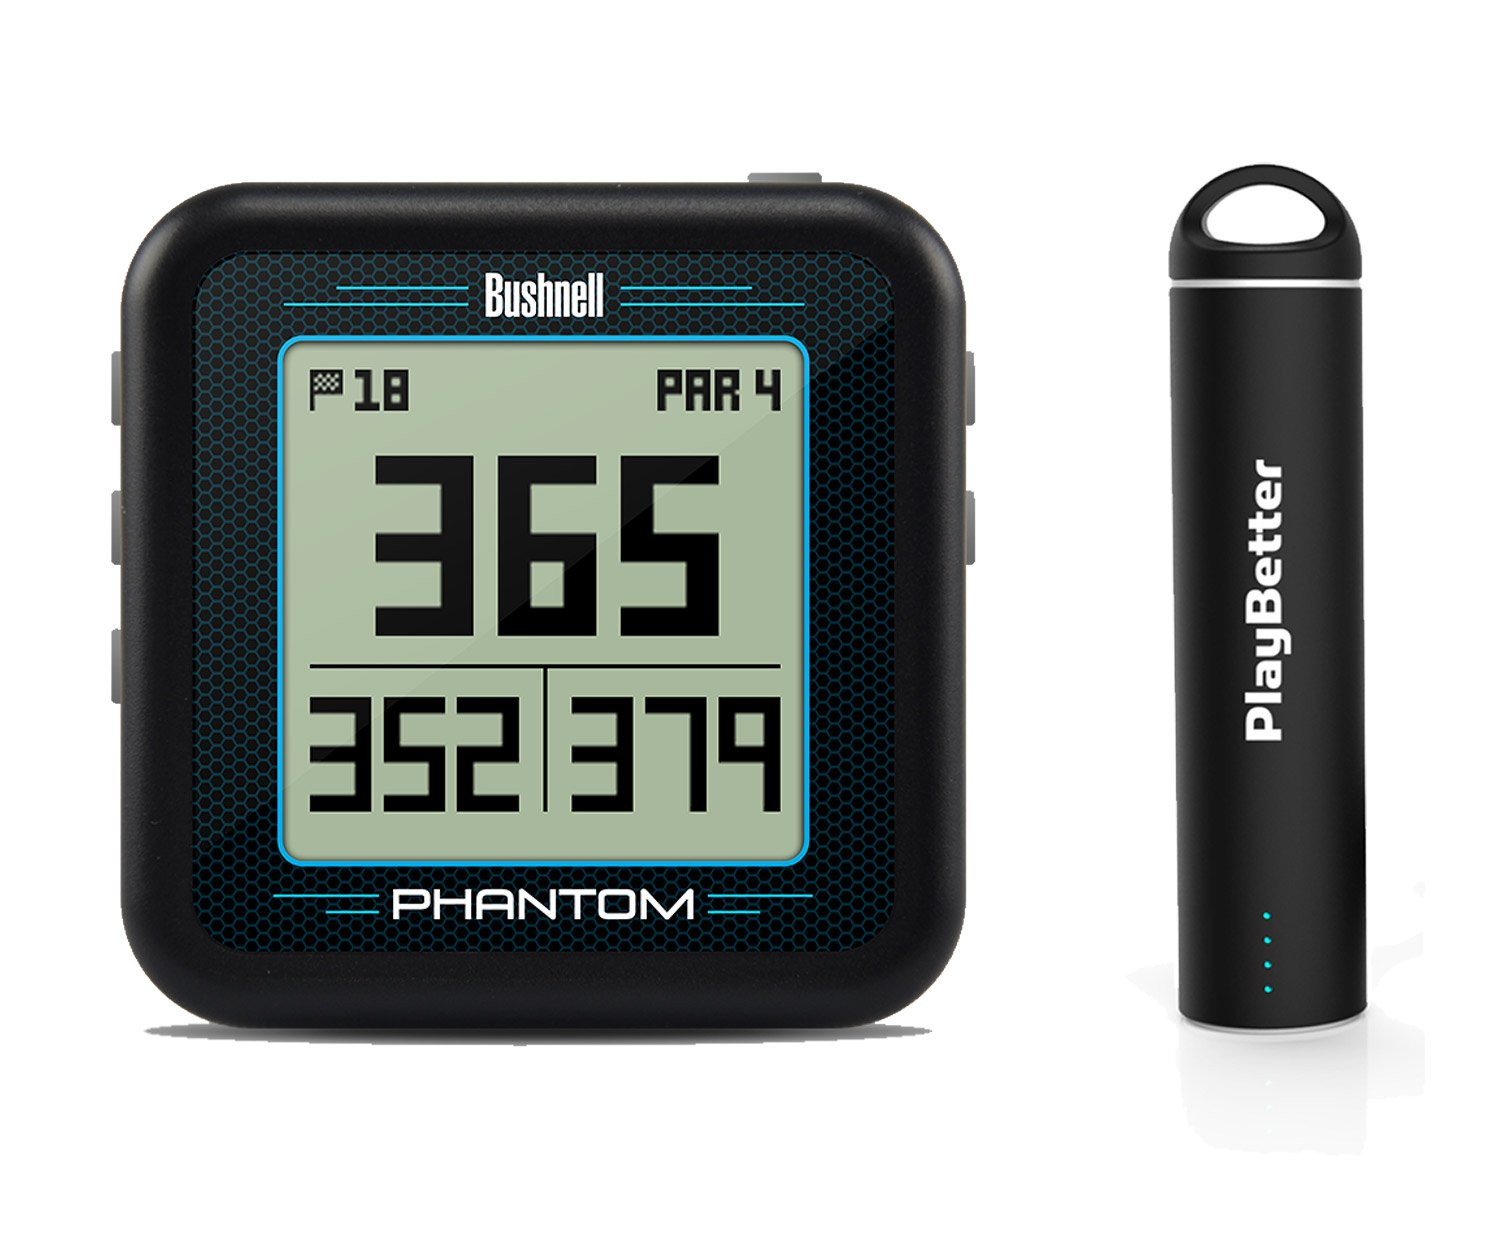 Bushnell Phantom (Black) Power Bundle with PlayBetter Portable USB Charger (2200mAh) | Handheld Golf GPS, Built-in Golf Cart Magnet, 35,000+ Pre-Loaded Courses, Compact & Lightweight by PlayBetter